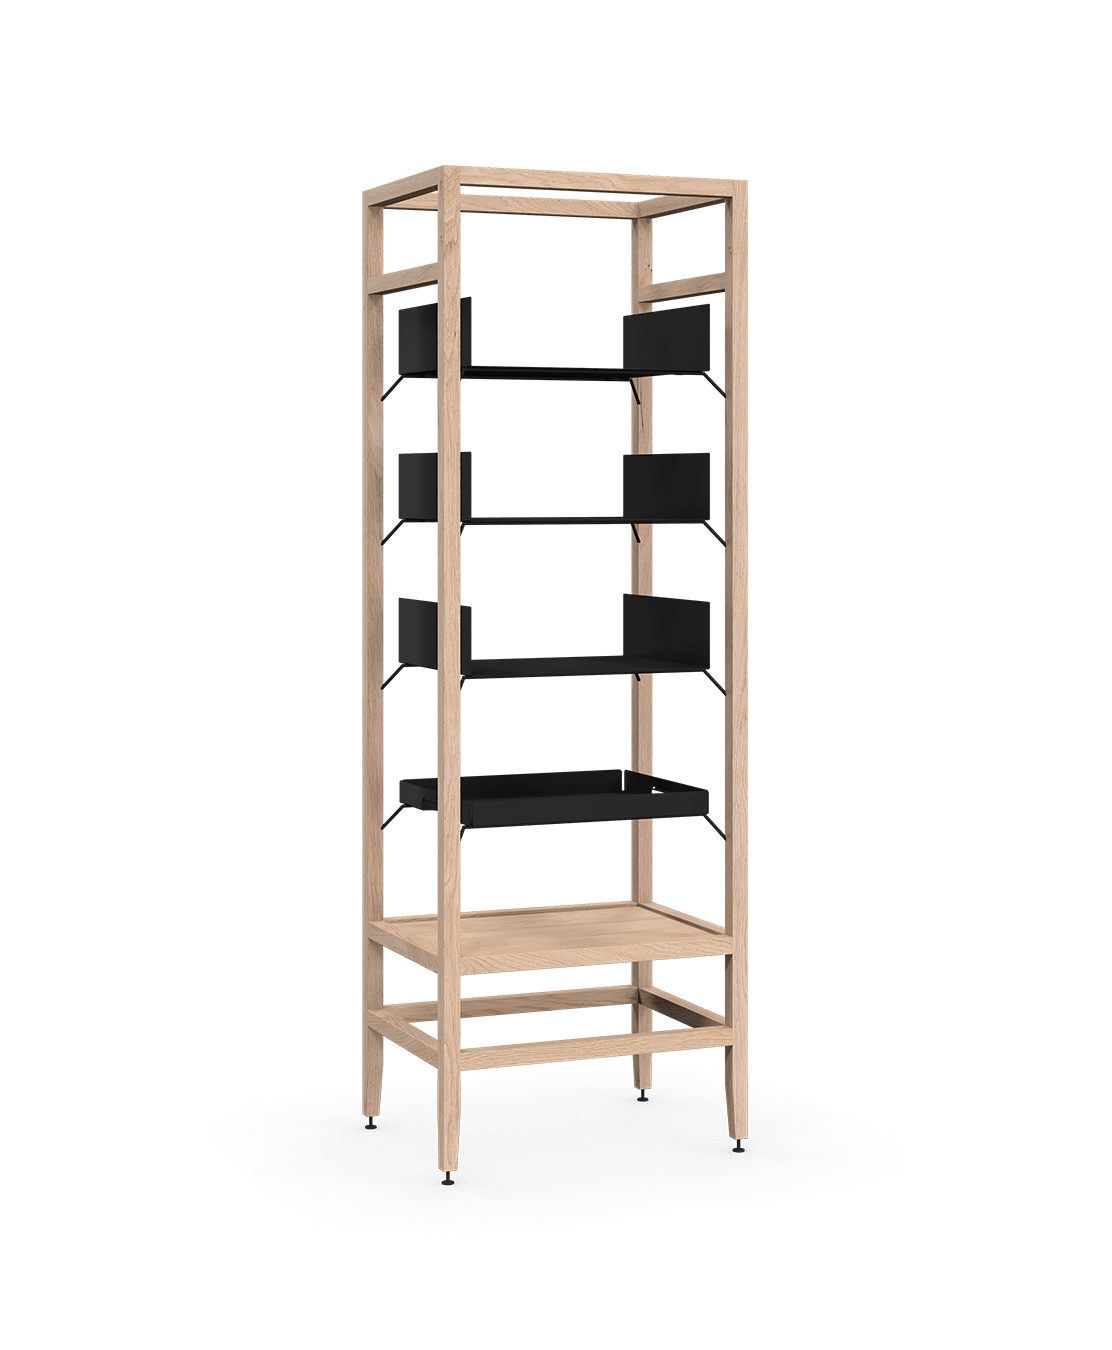 coquo volitare white oak solid wood modular 3 shelves 1 removable tray storage tall bookcase shelving unit 24 inch C2-S-2418-0002-NA